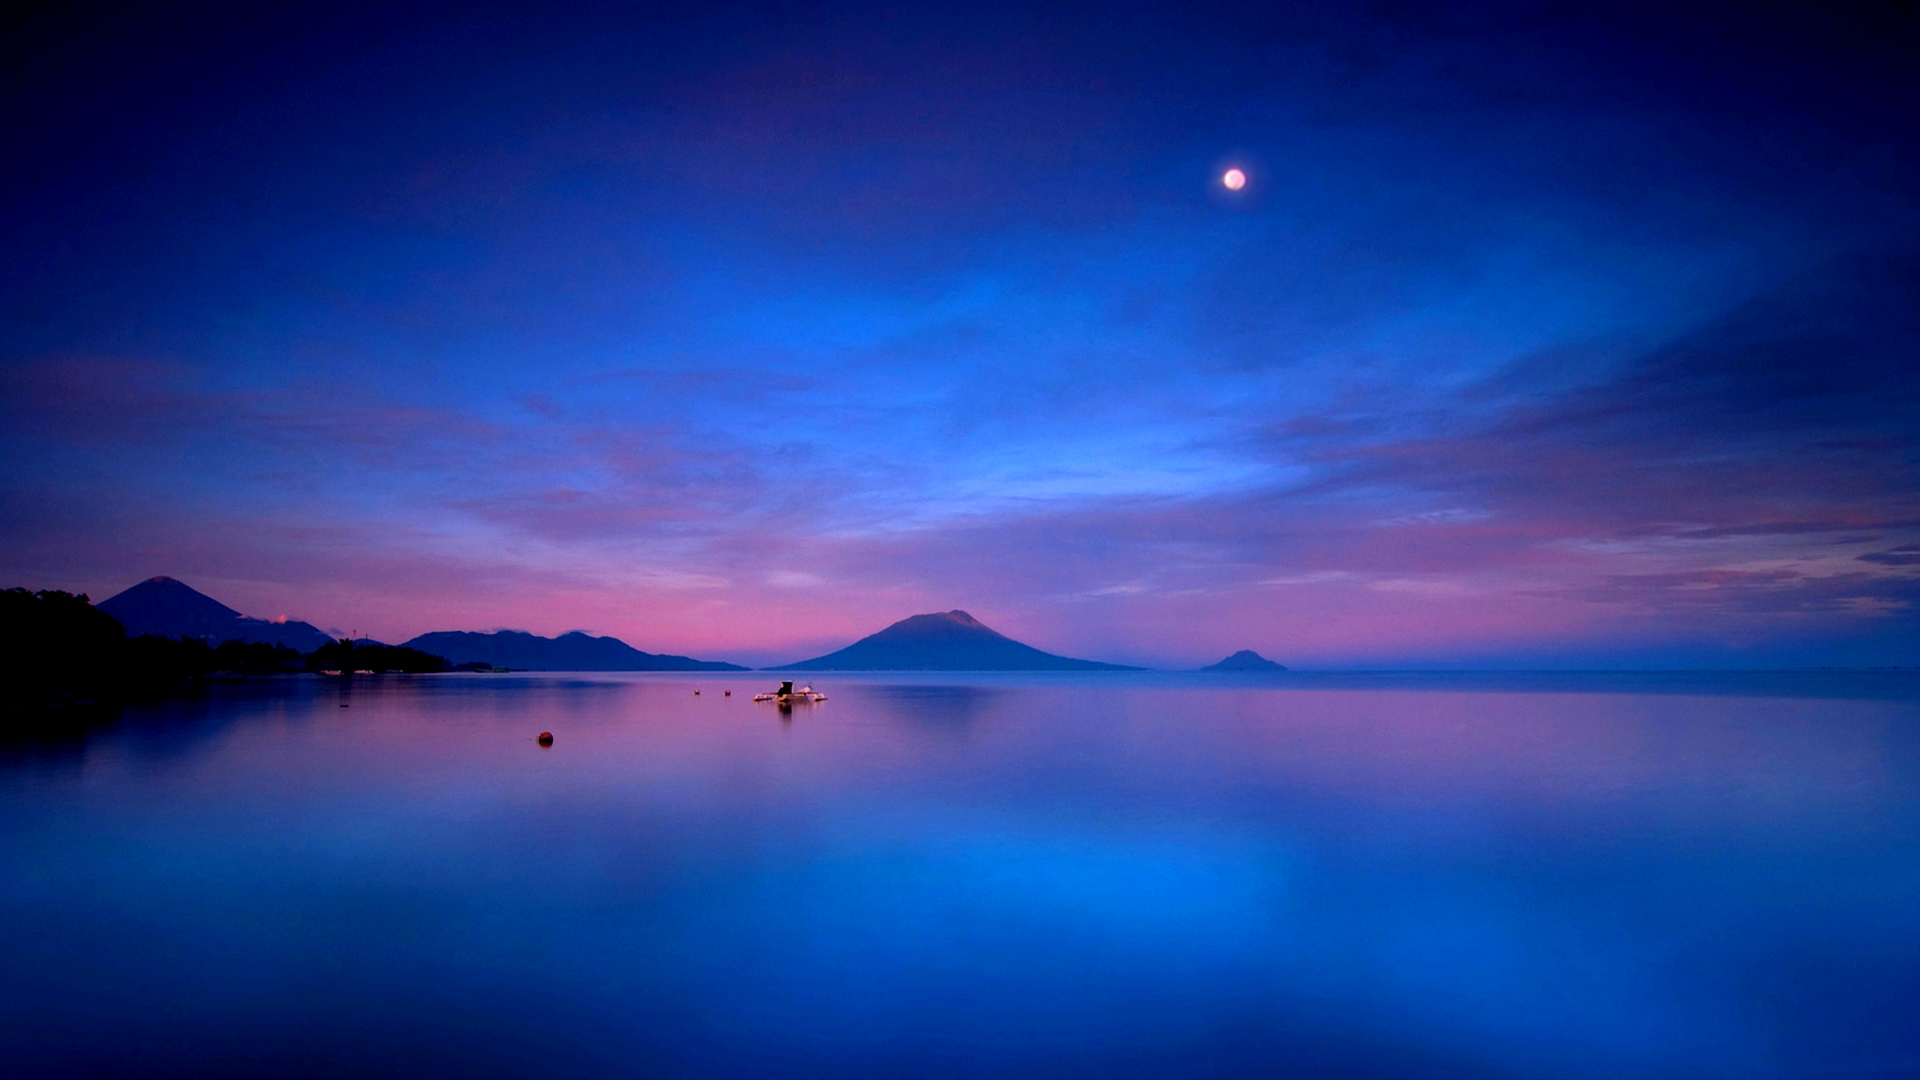 calming hd wallpaper wallpapersafari